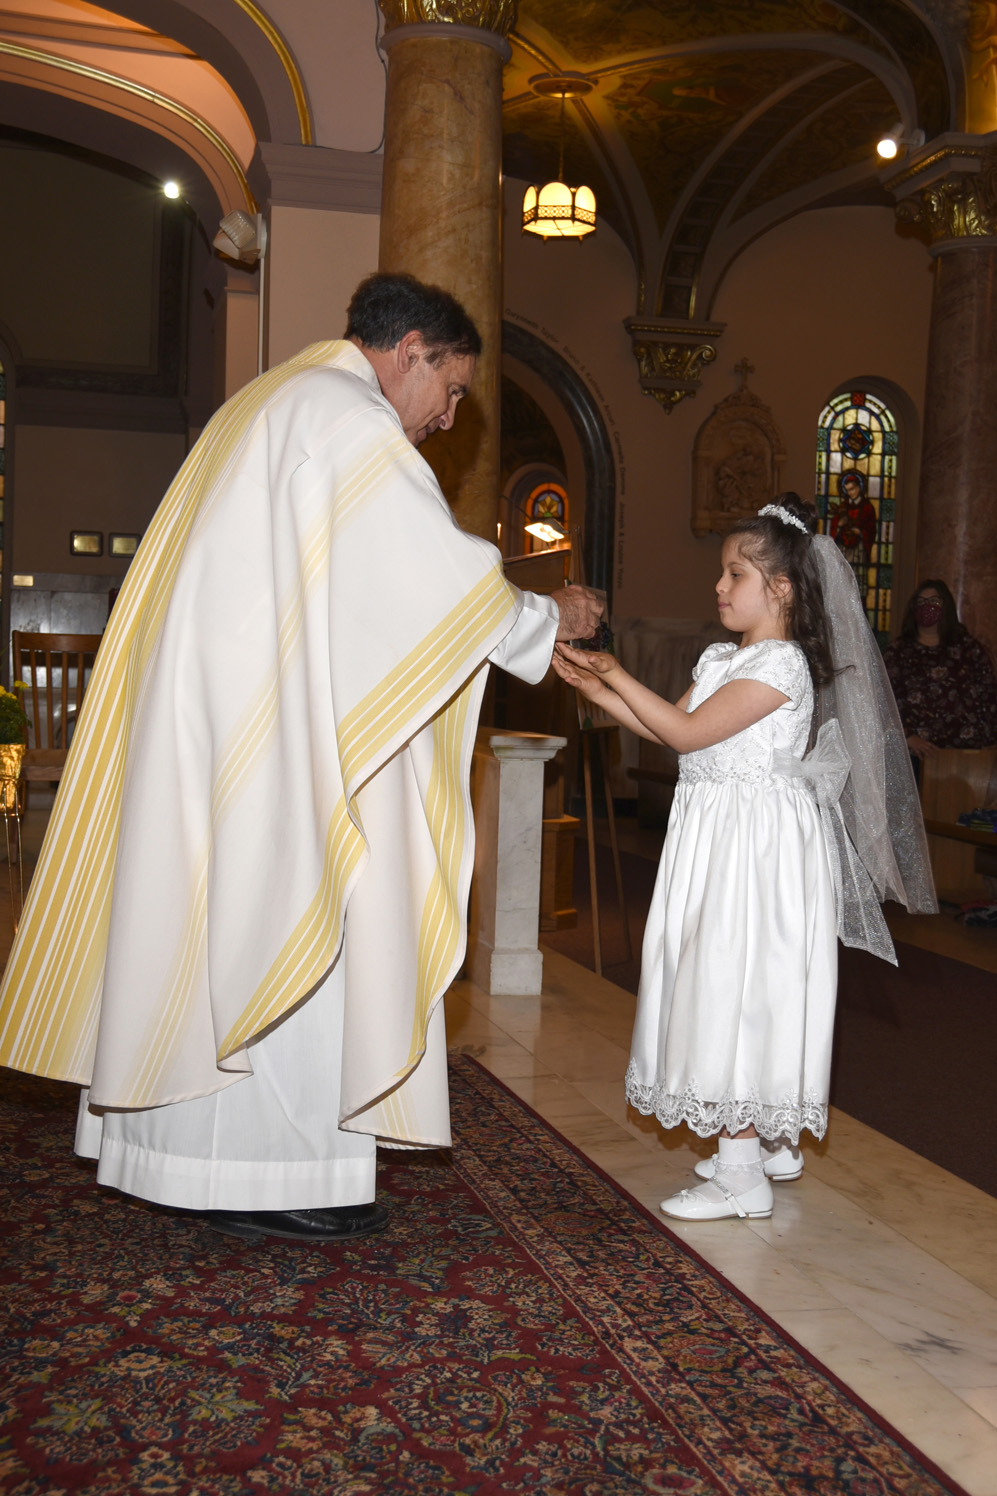 FIRST-COMMUNION-MAY-2-2021-1001001239